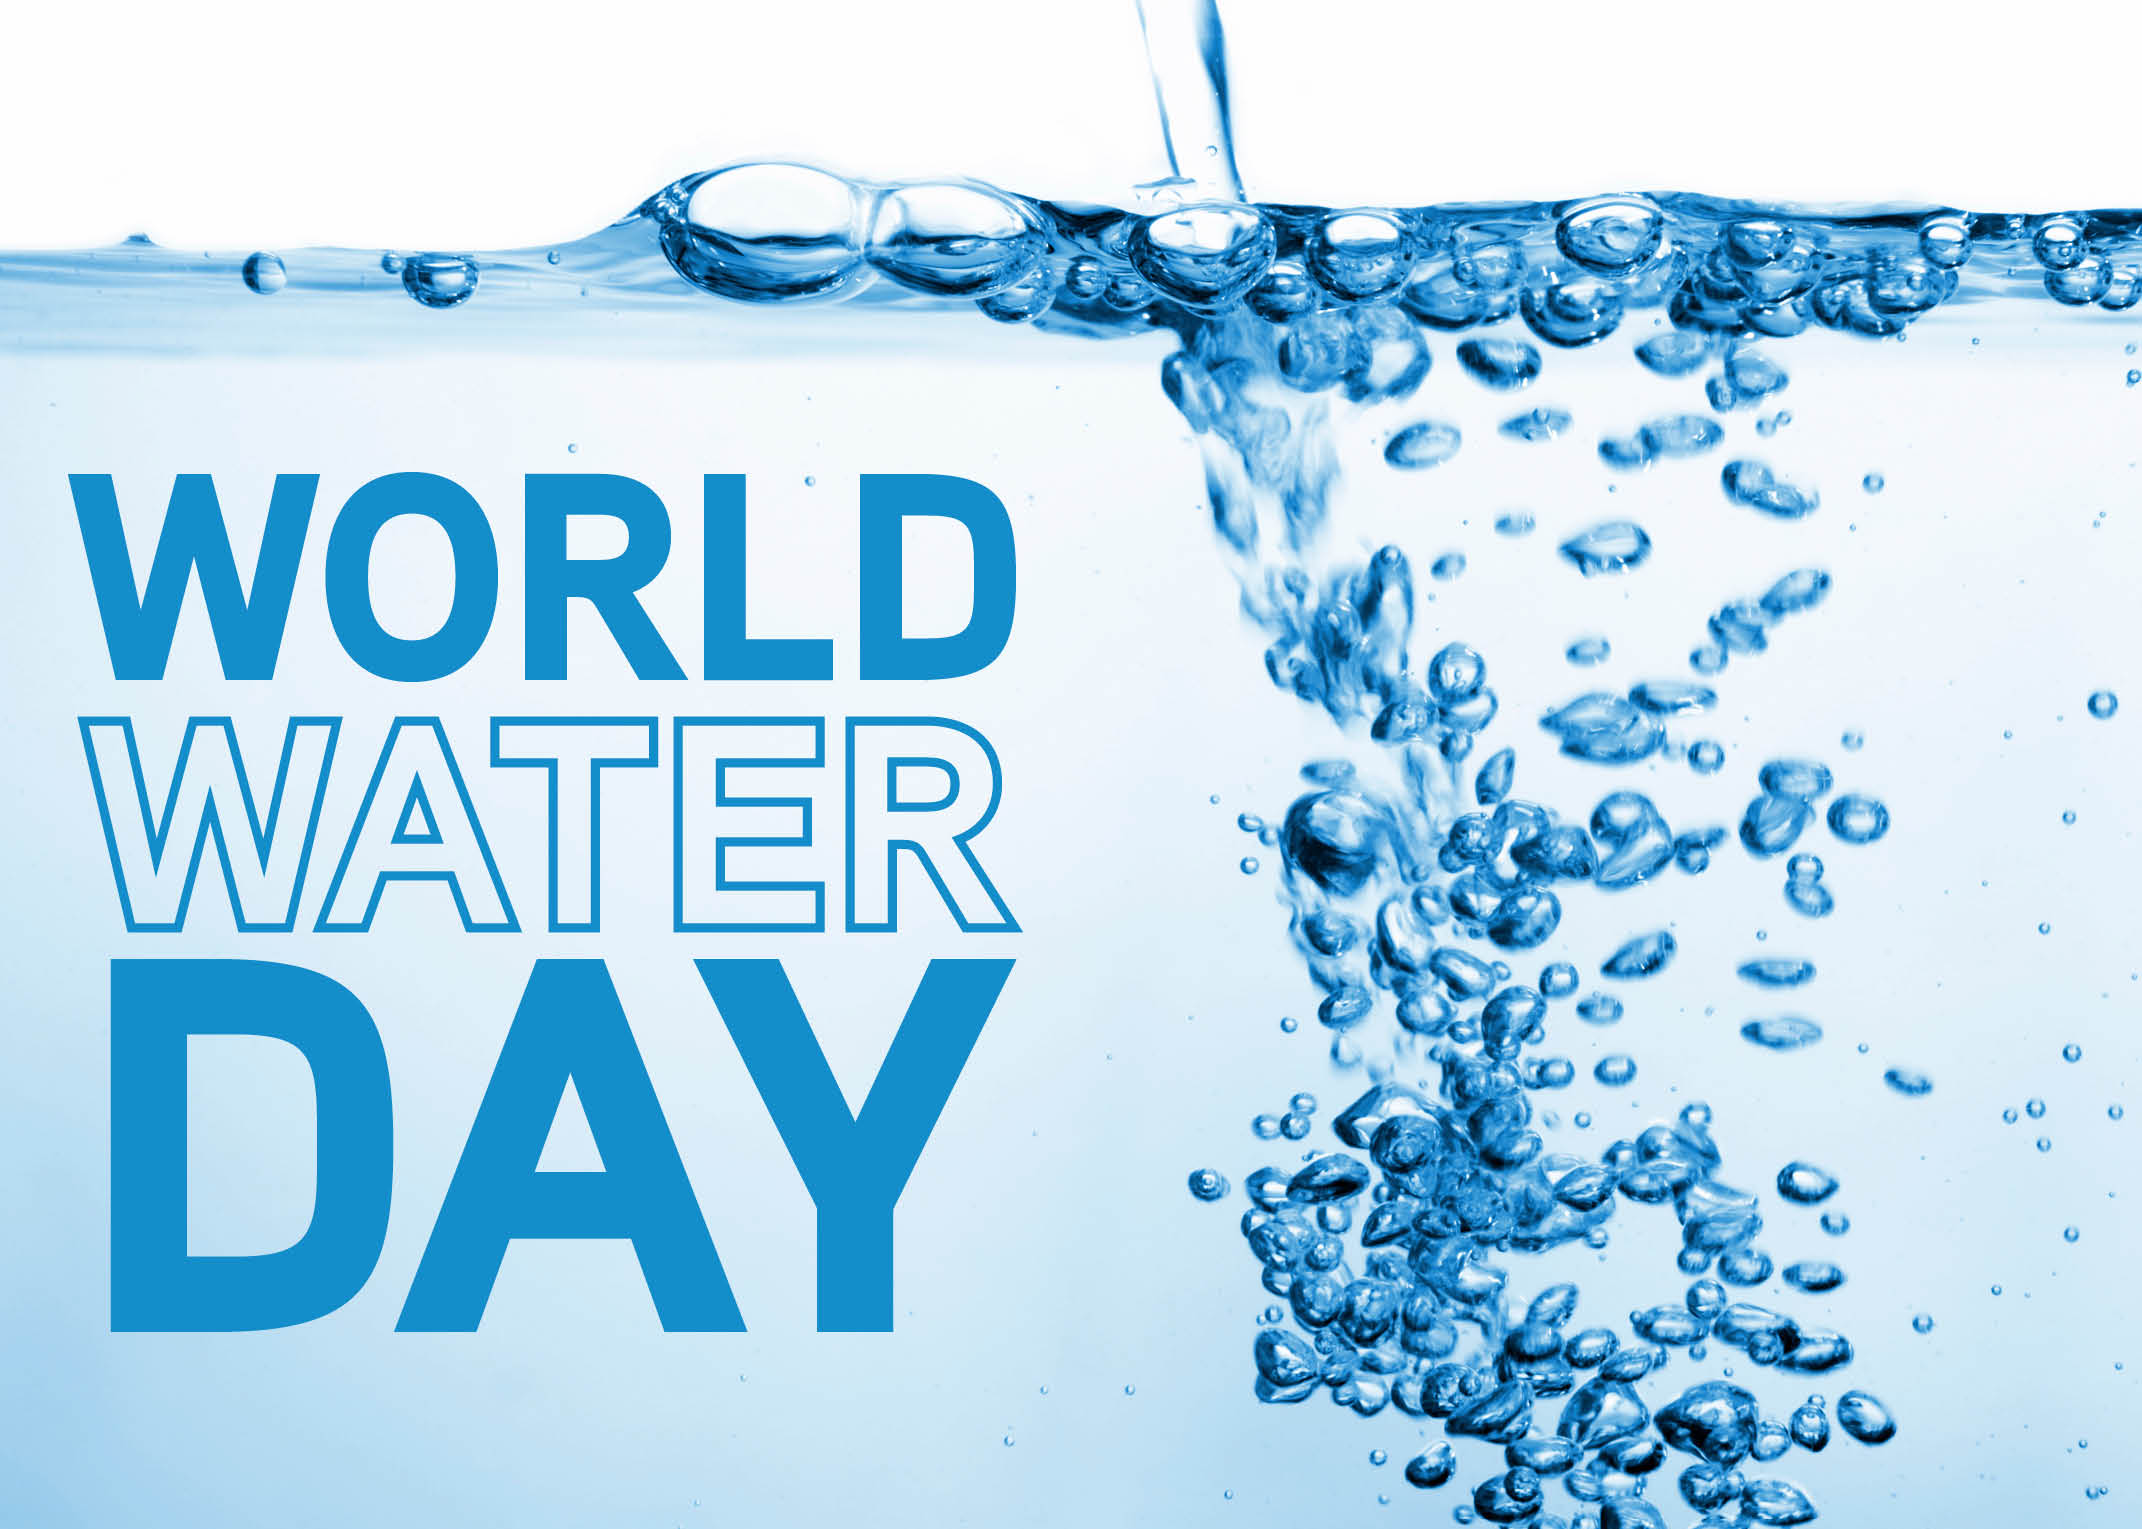 World Water Day 2015 | Mr. Rooter Blog